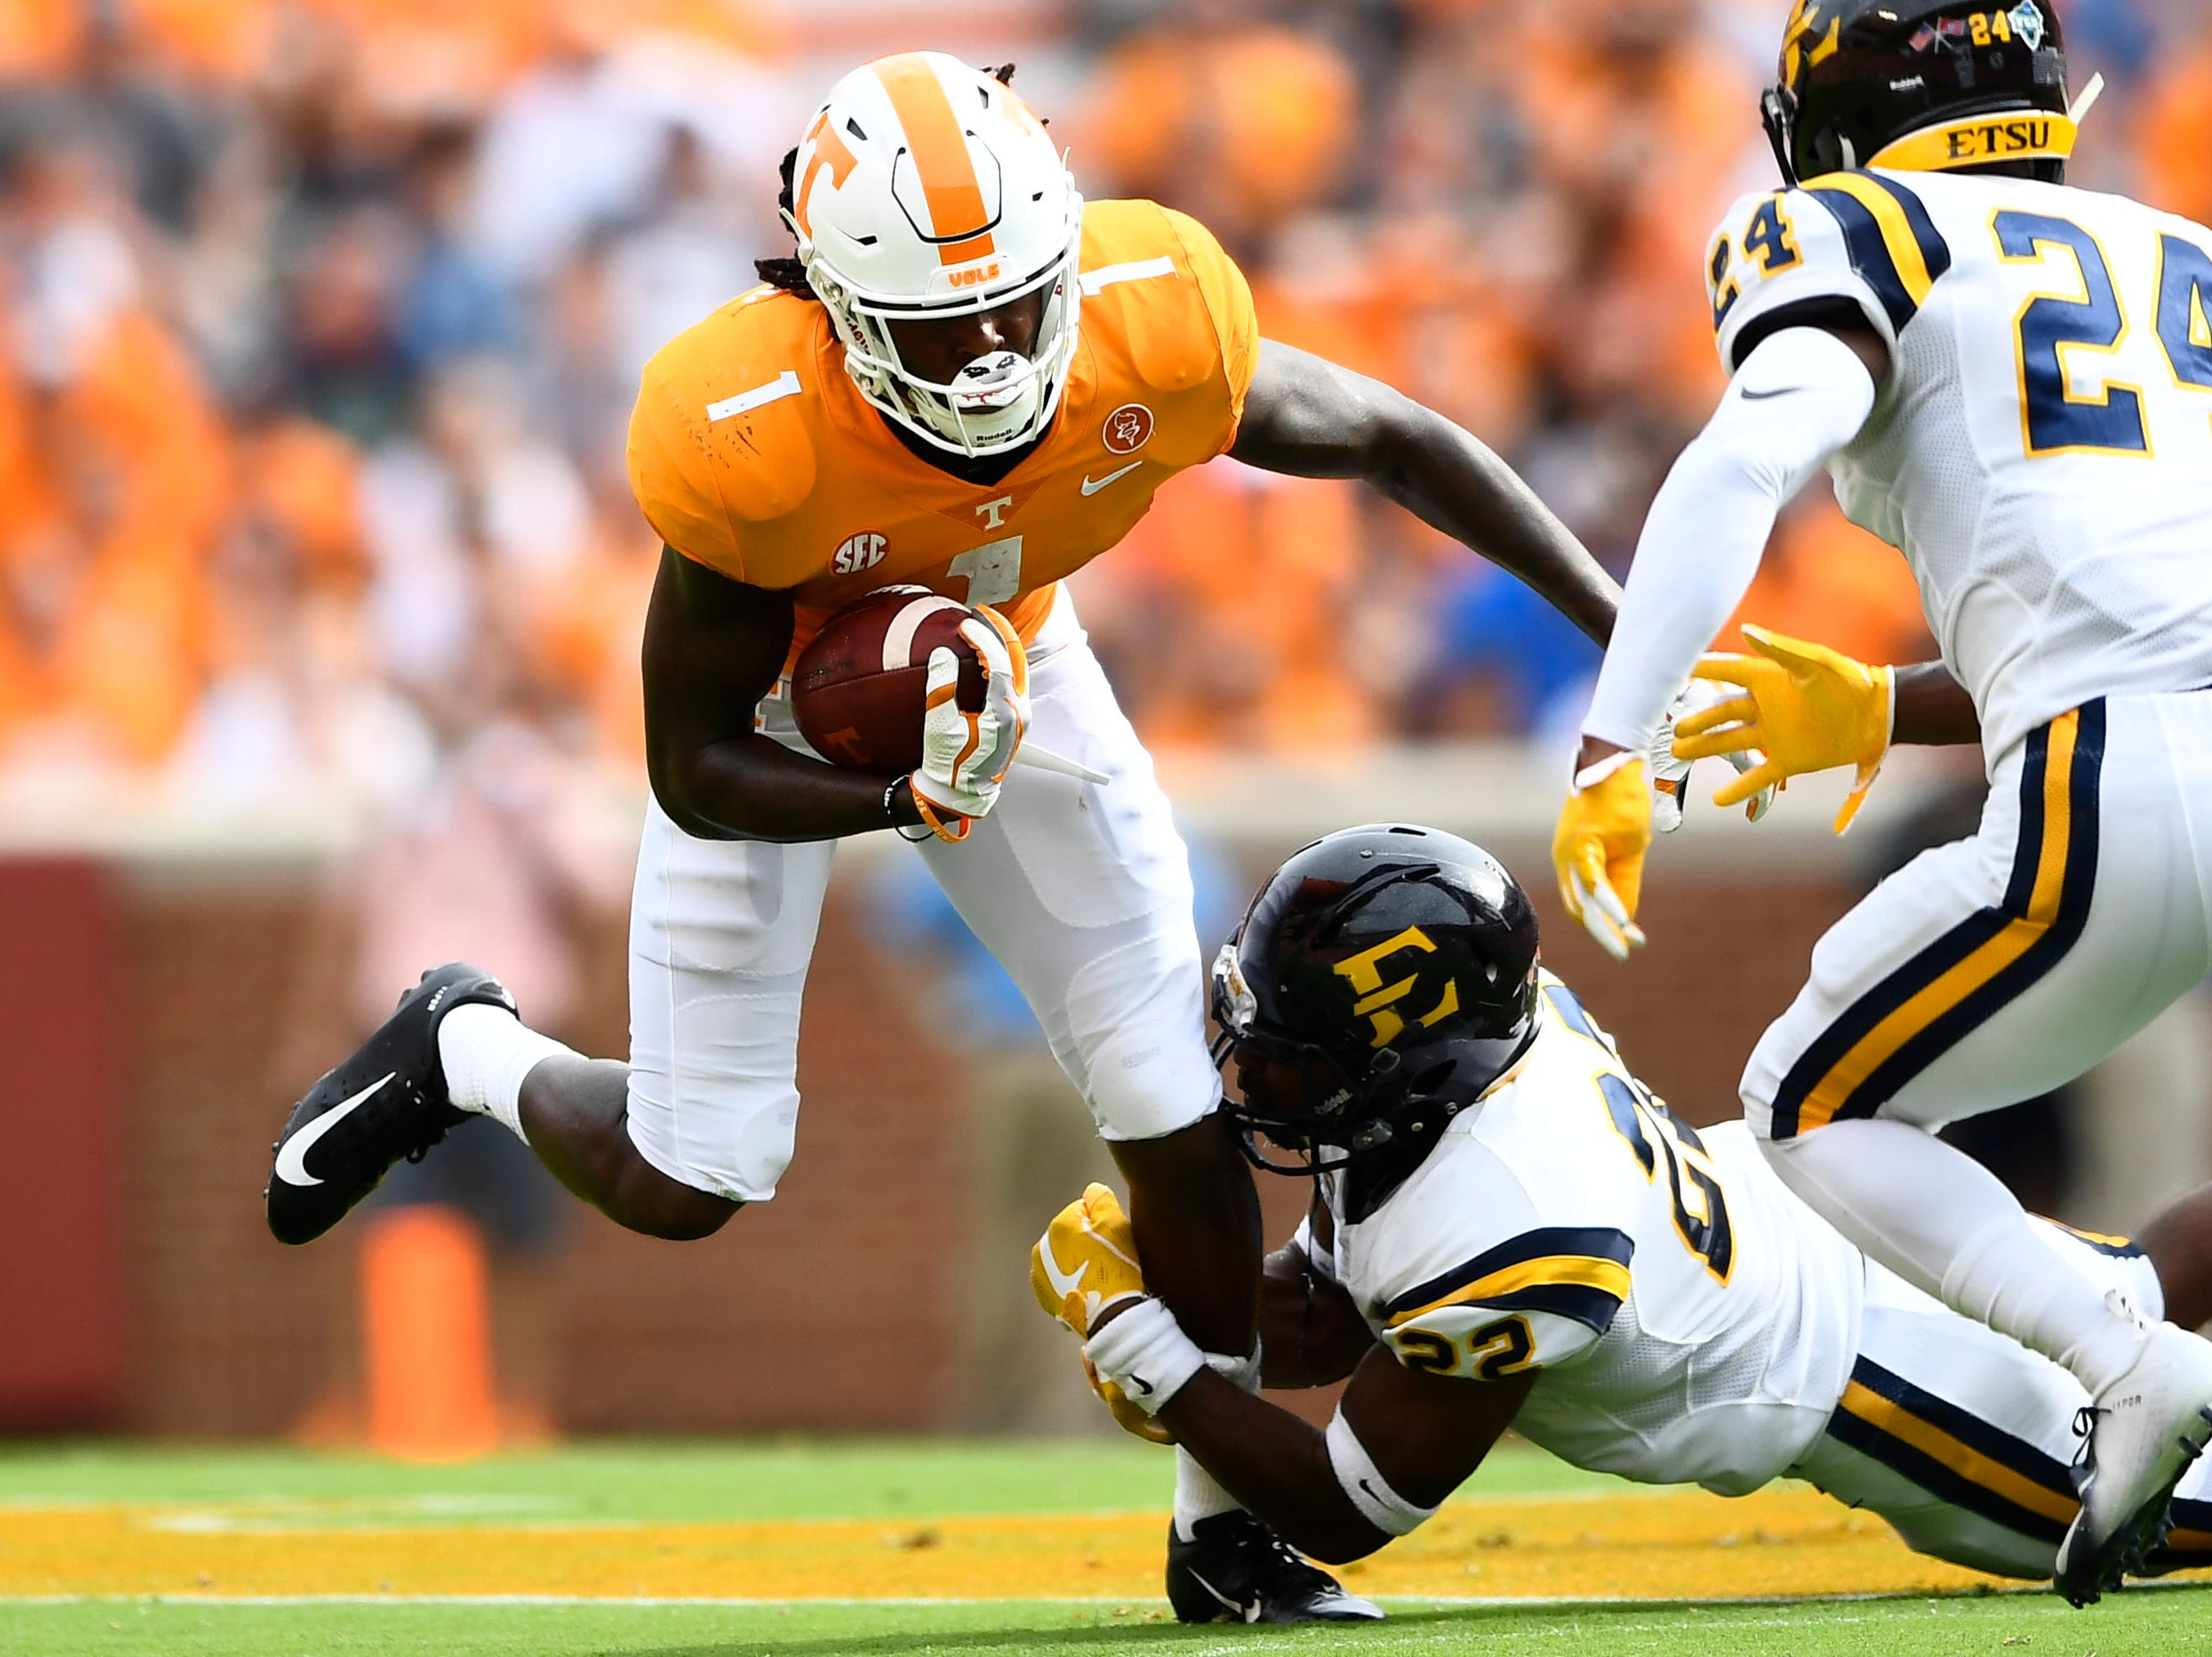 Tennessee wide receiver Marquez Callaway (1) is tripped up by ETSU linebacker Zack Yancey (22) during a game between Tennessee and ETSU at Neyland Stadium in Knoxville, Tennessee on Saturday, September 8, 2018.